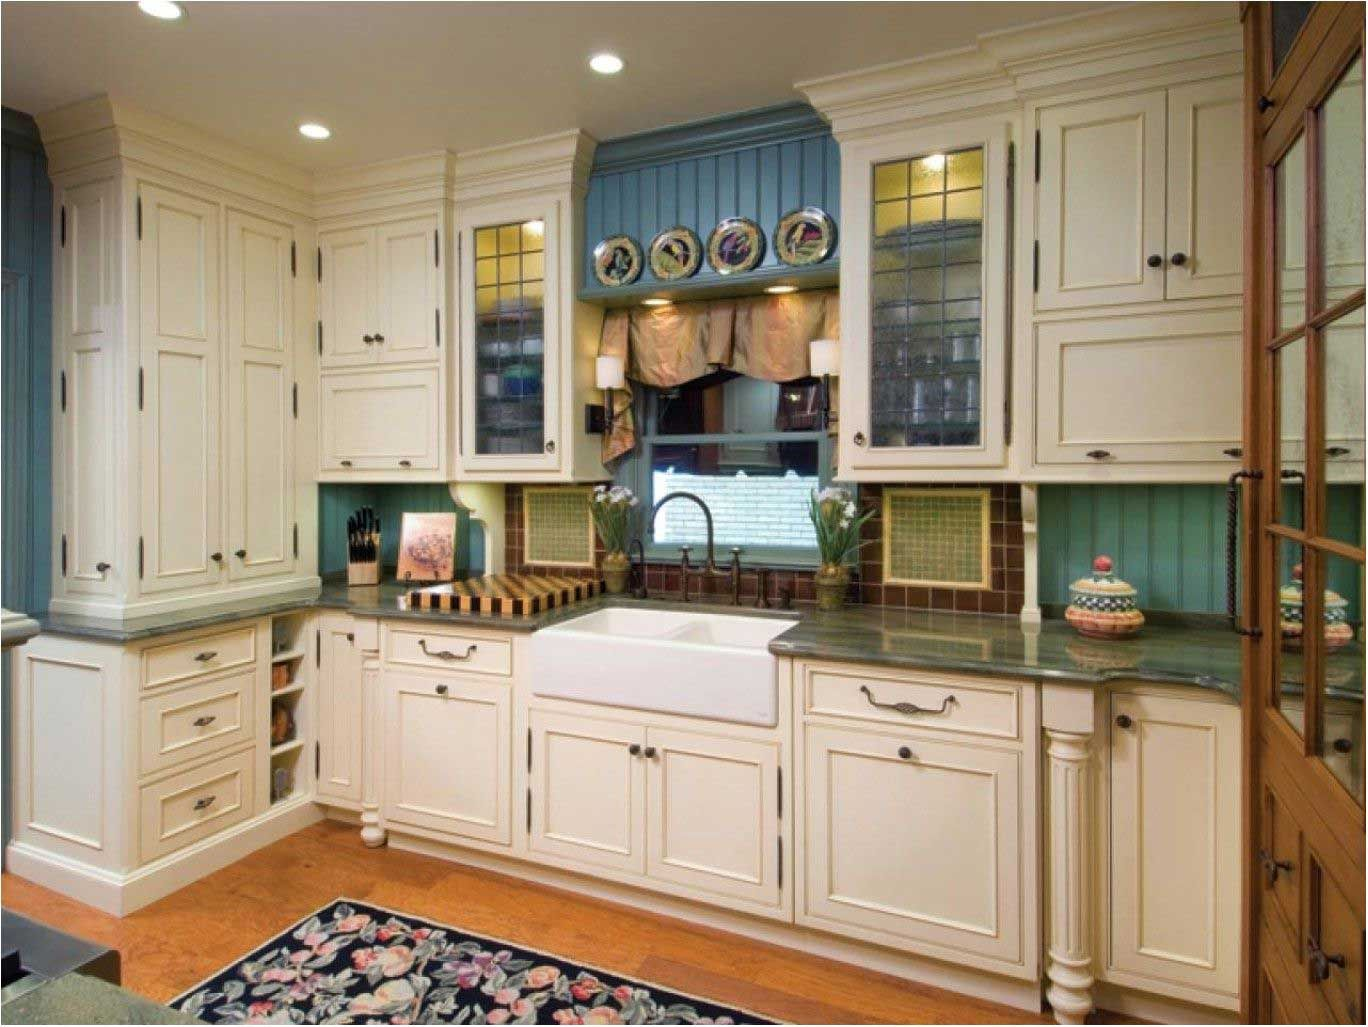 Knotty Pine Kitchen Cabinets 10 Kitchen Design Fails So Bad You Ll Lose Your Lunch Kitchen Cabinets Design Hidup